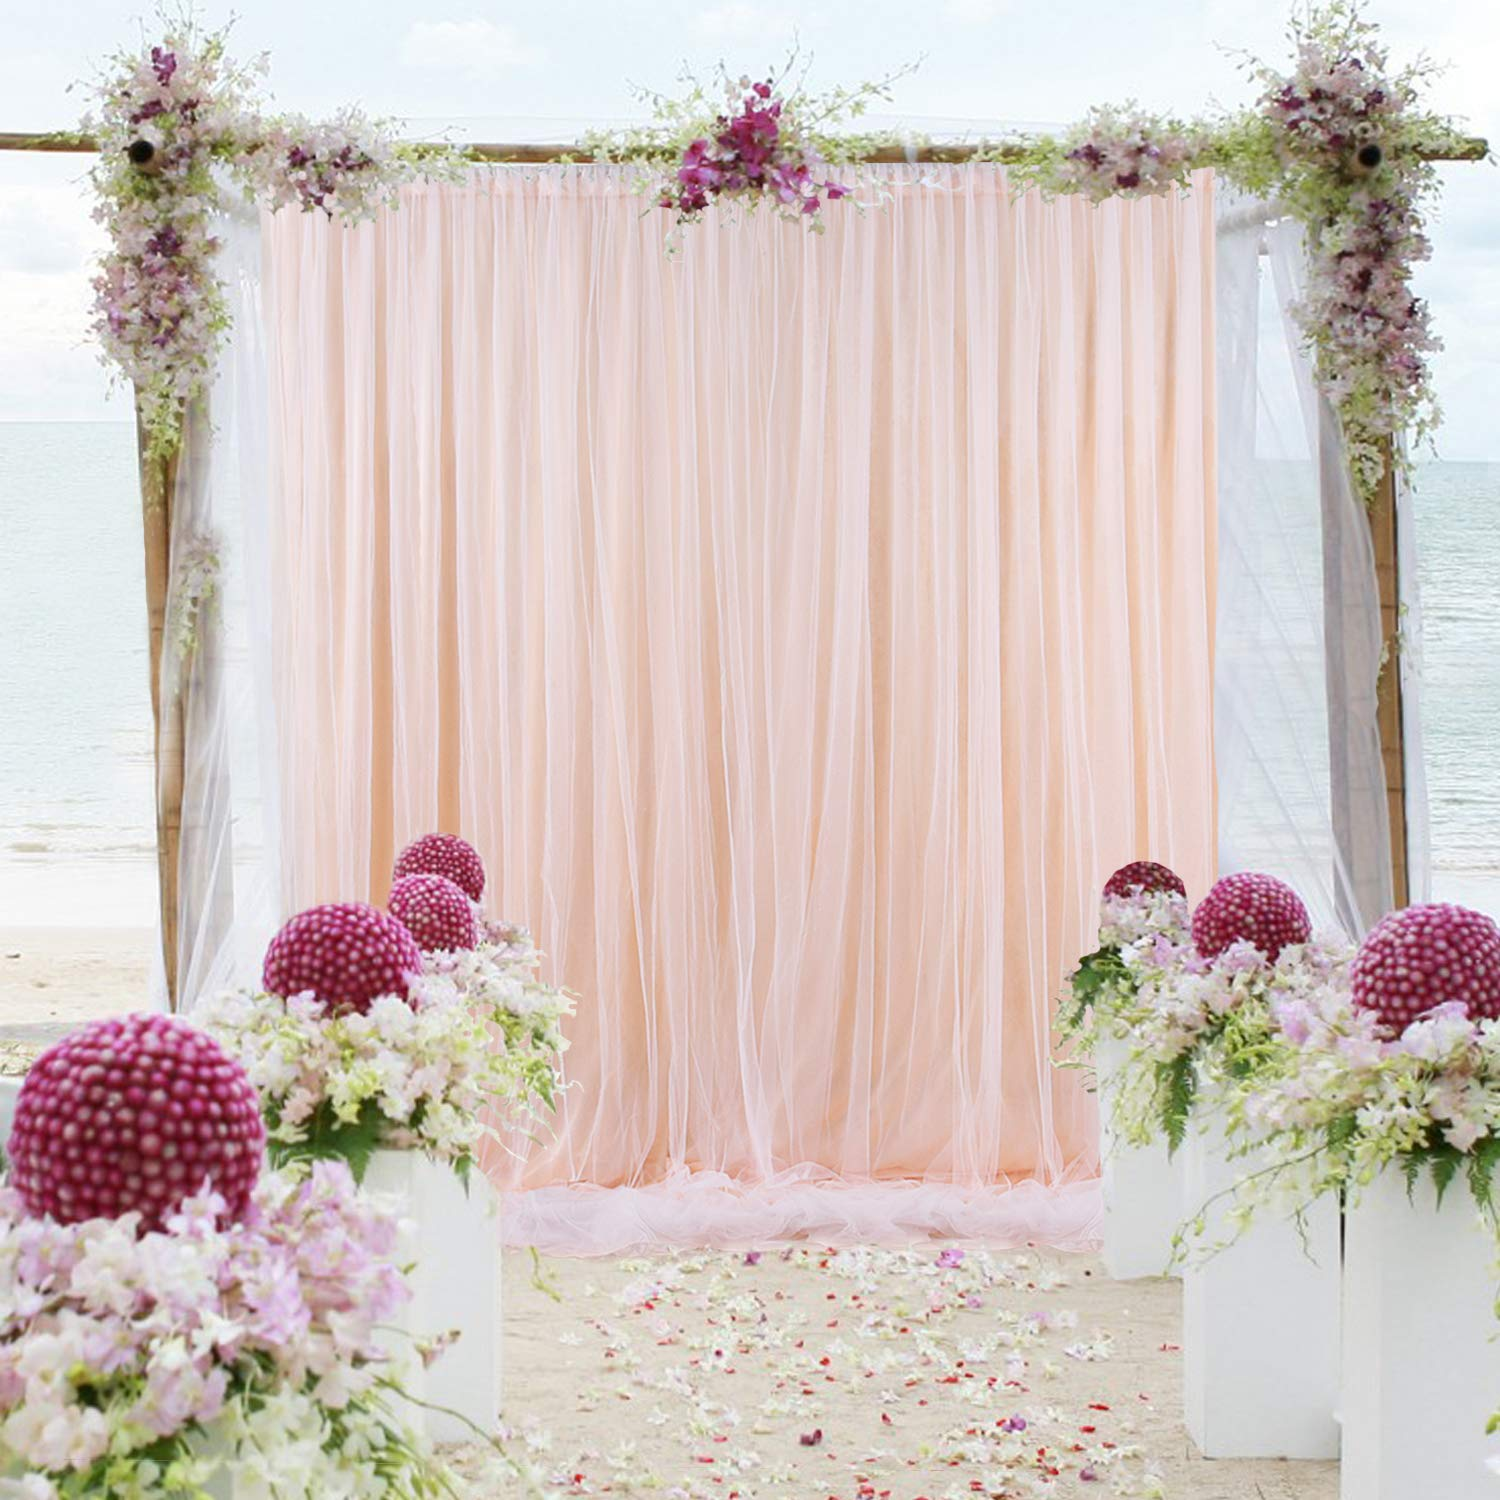 Tulle-Backdrop-Curtains-Peach Chiffon Background for Wedding Reception Parties Baby Shower Photographer Picture Christmas Decoration 5 ft X 7 ft